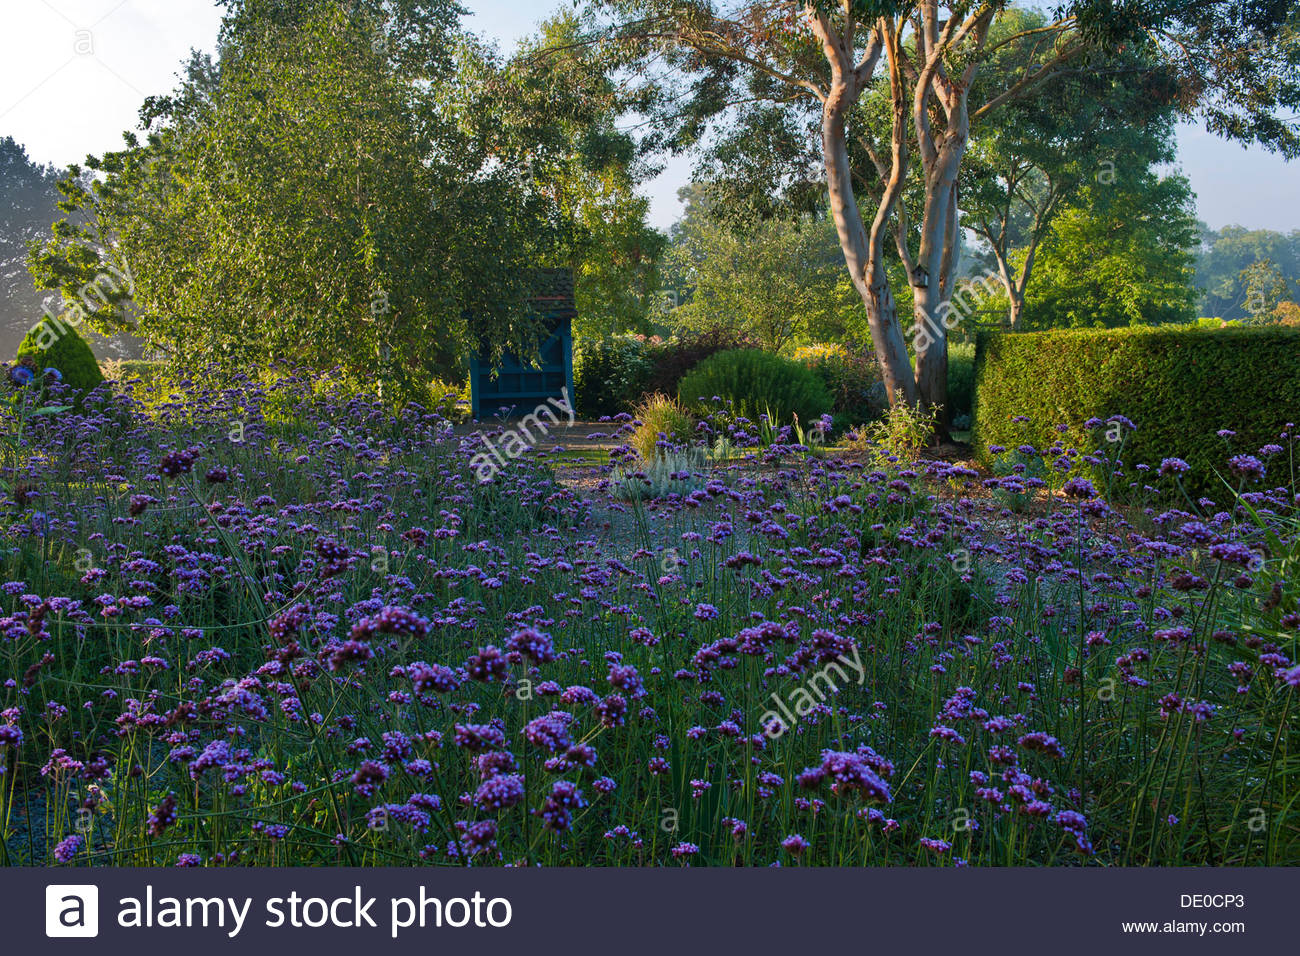 Verbena bonariensis purpletop vervain covered seat bench silver birches Eucalyptus trees Merriments East Sussex - Stock Image